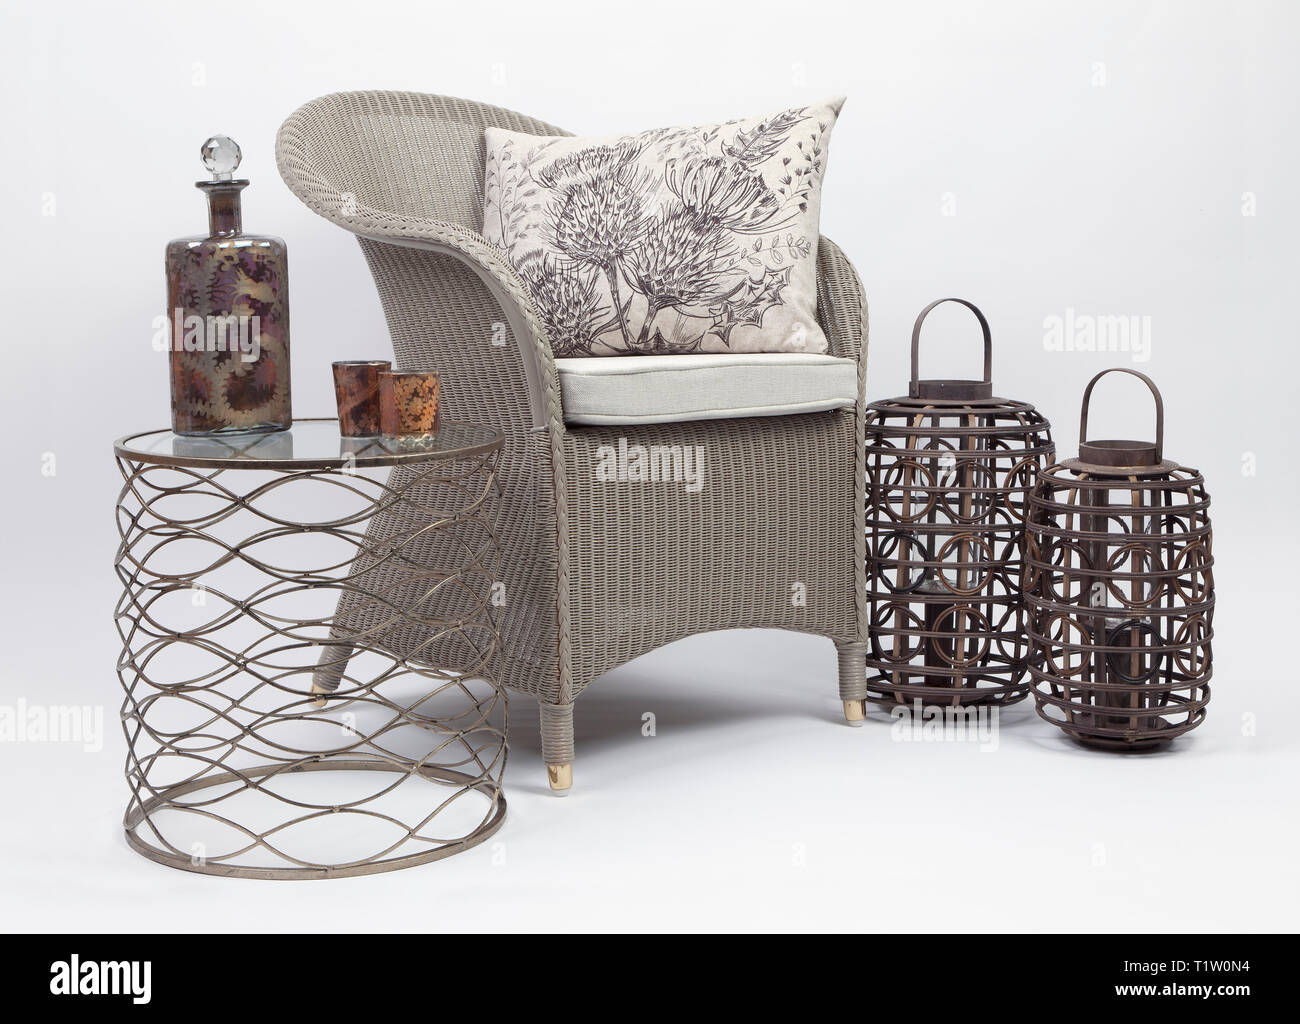 Awe Inspiring Wicker Chair And Cushions With A Side Table And Two Wicker Cjindustries Chair Design For Home Cjindustriesco